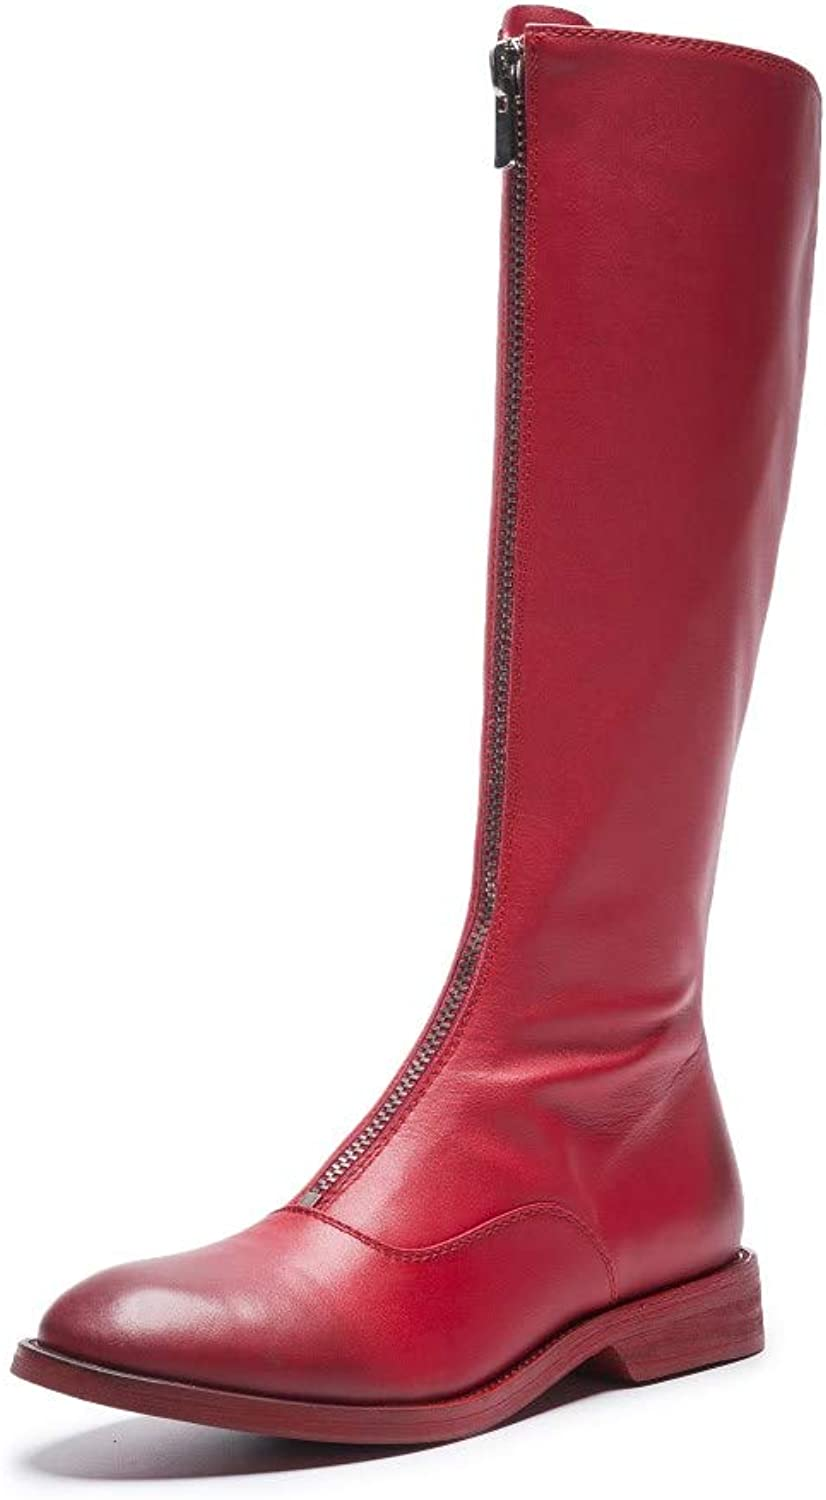 Nine Seven Women's Genuine Leather Round Toe Riding Knee High Zipper Boots - Handmade Casual Fashion Winter Leather Boots